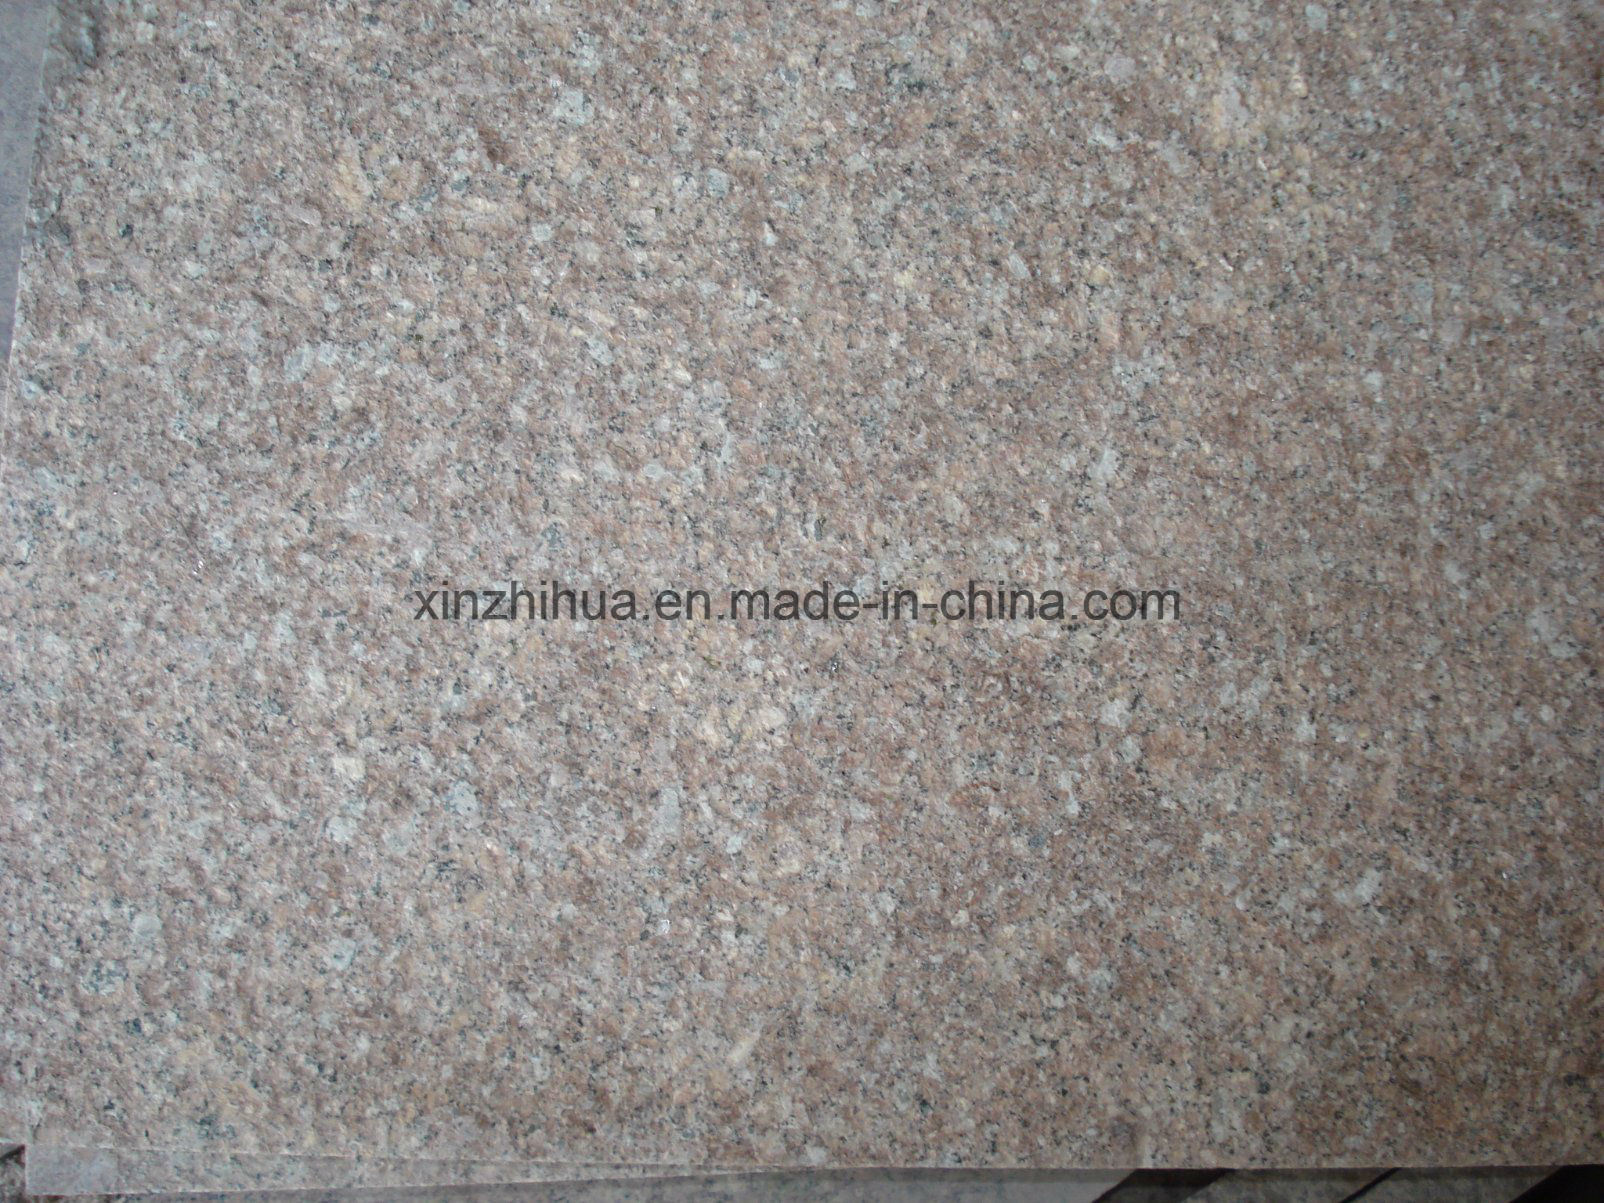 G611 Granite for Tiles/Stair Steps